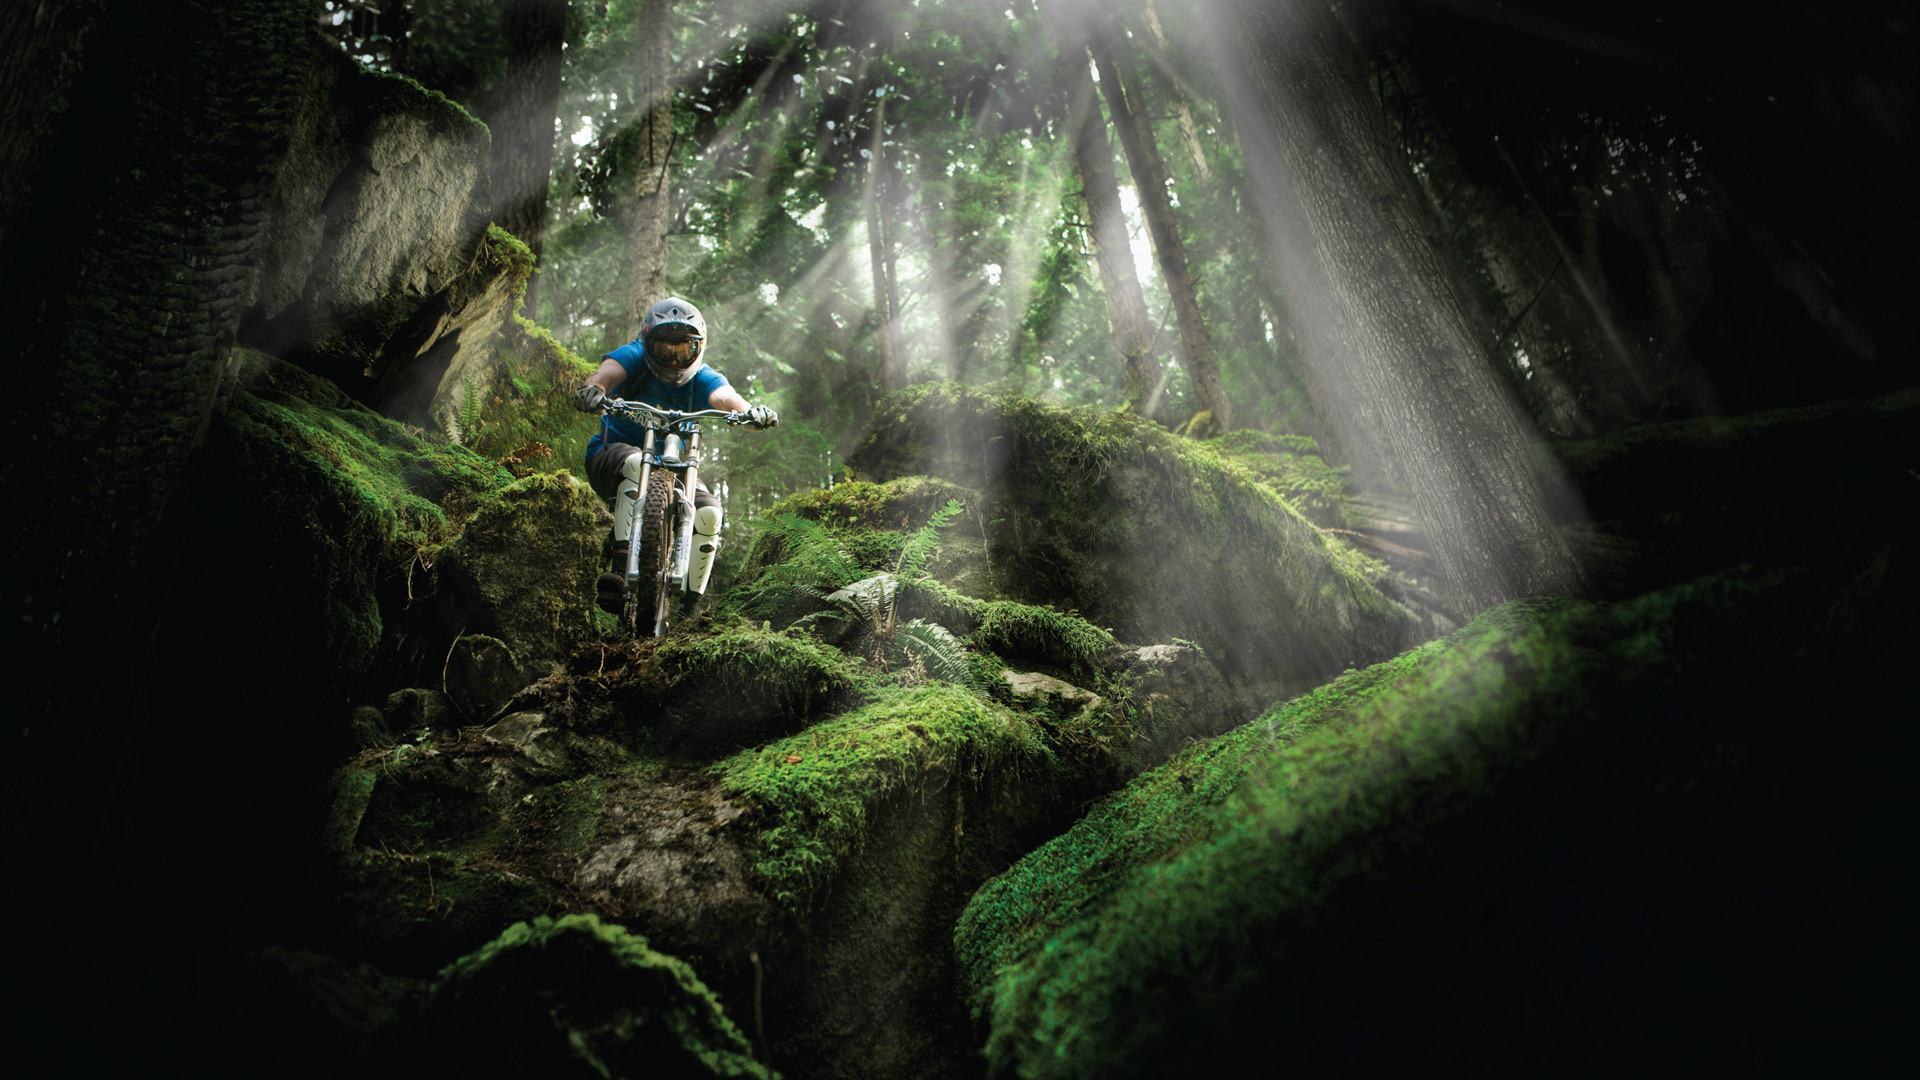 downhill mountain bike wallpaper ·①, Powerpoint templates